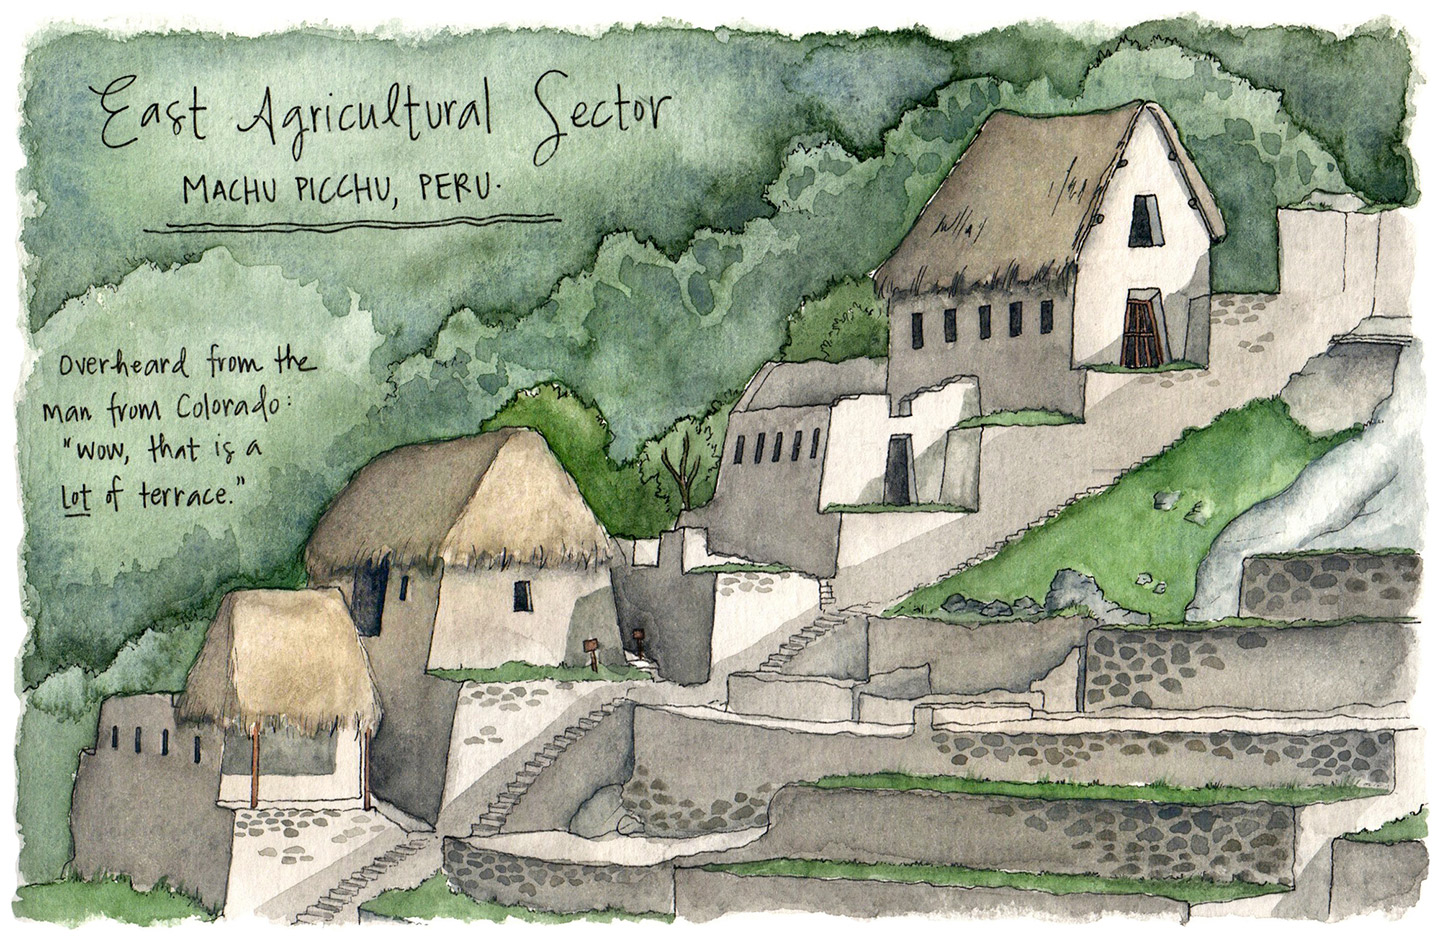 One final sketch of the Inca's sacred site.